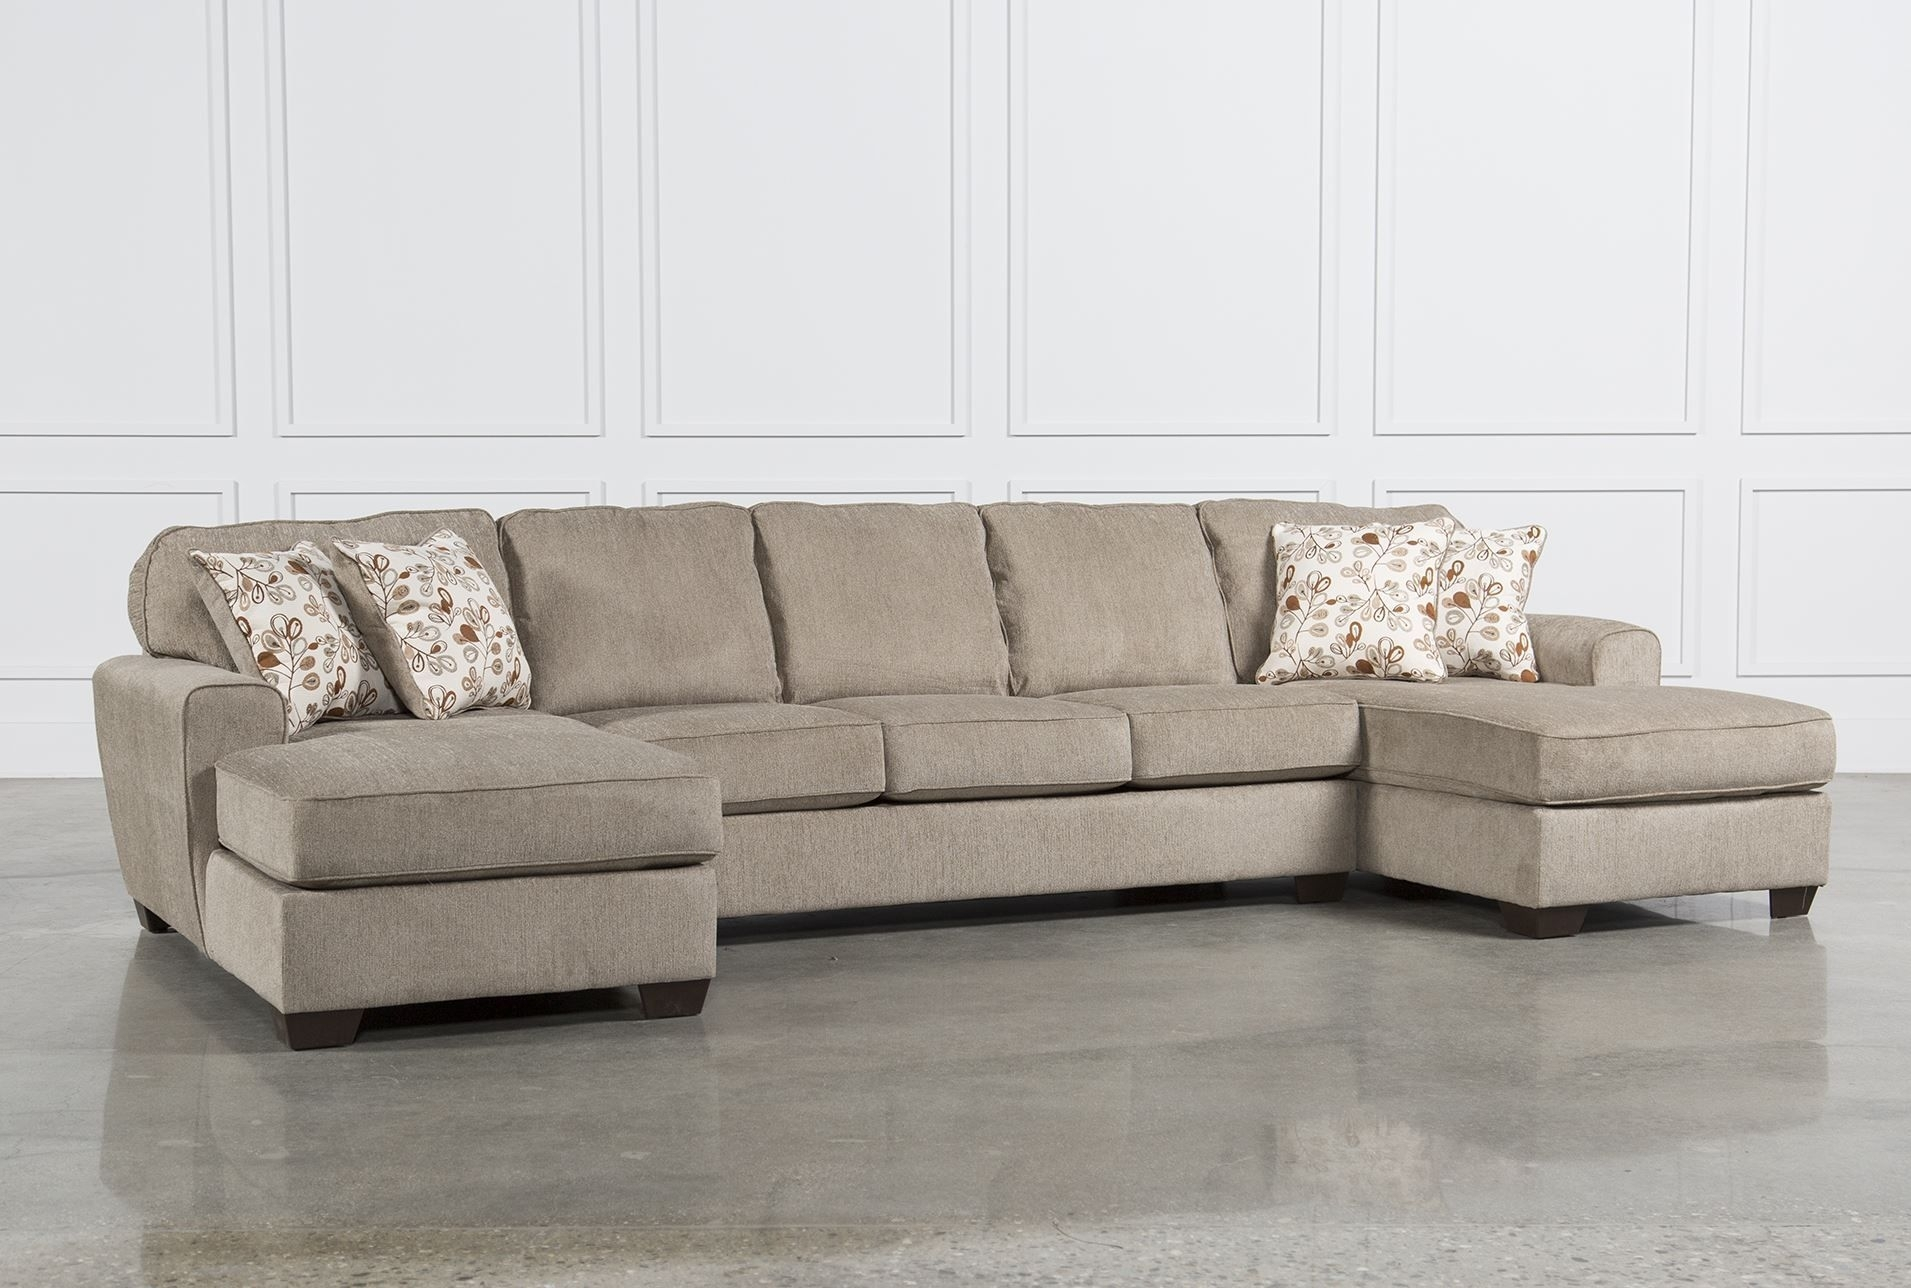 Patola Park 3 Piece Sectional W/2 Corner Chaises - Signature inside Avery 2 Piece Sectionals With Laf Armless Chaise (Image 22 of 30)